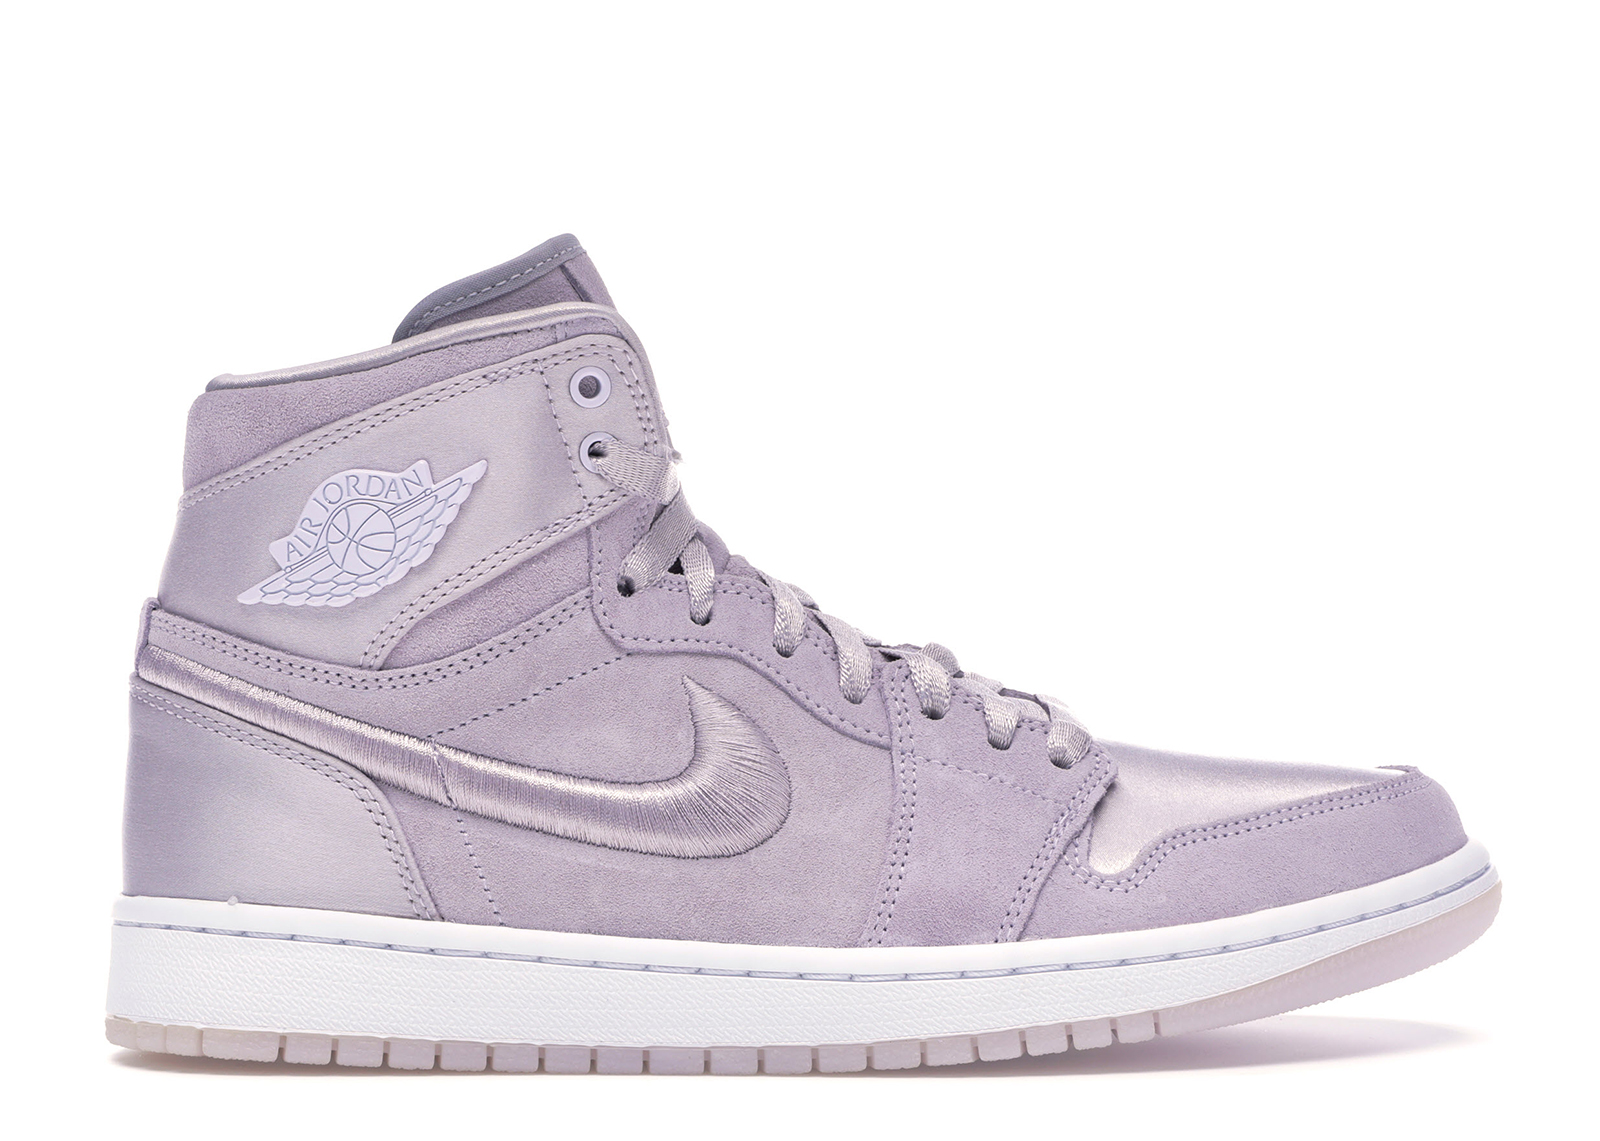 Jordan 1 RETRO HIGH SEASON OF HER BARLEY GRAPE (W)